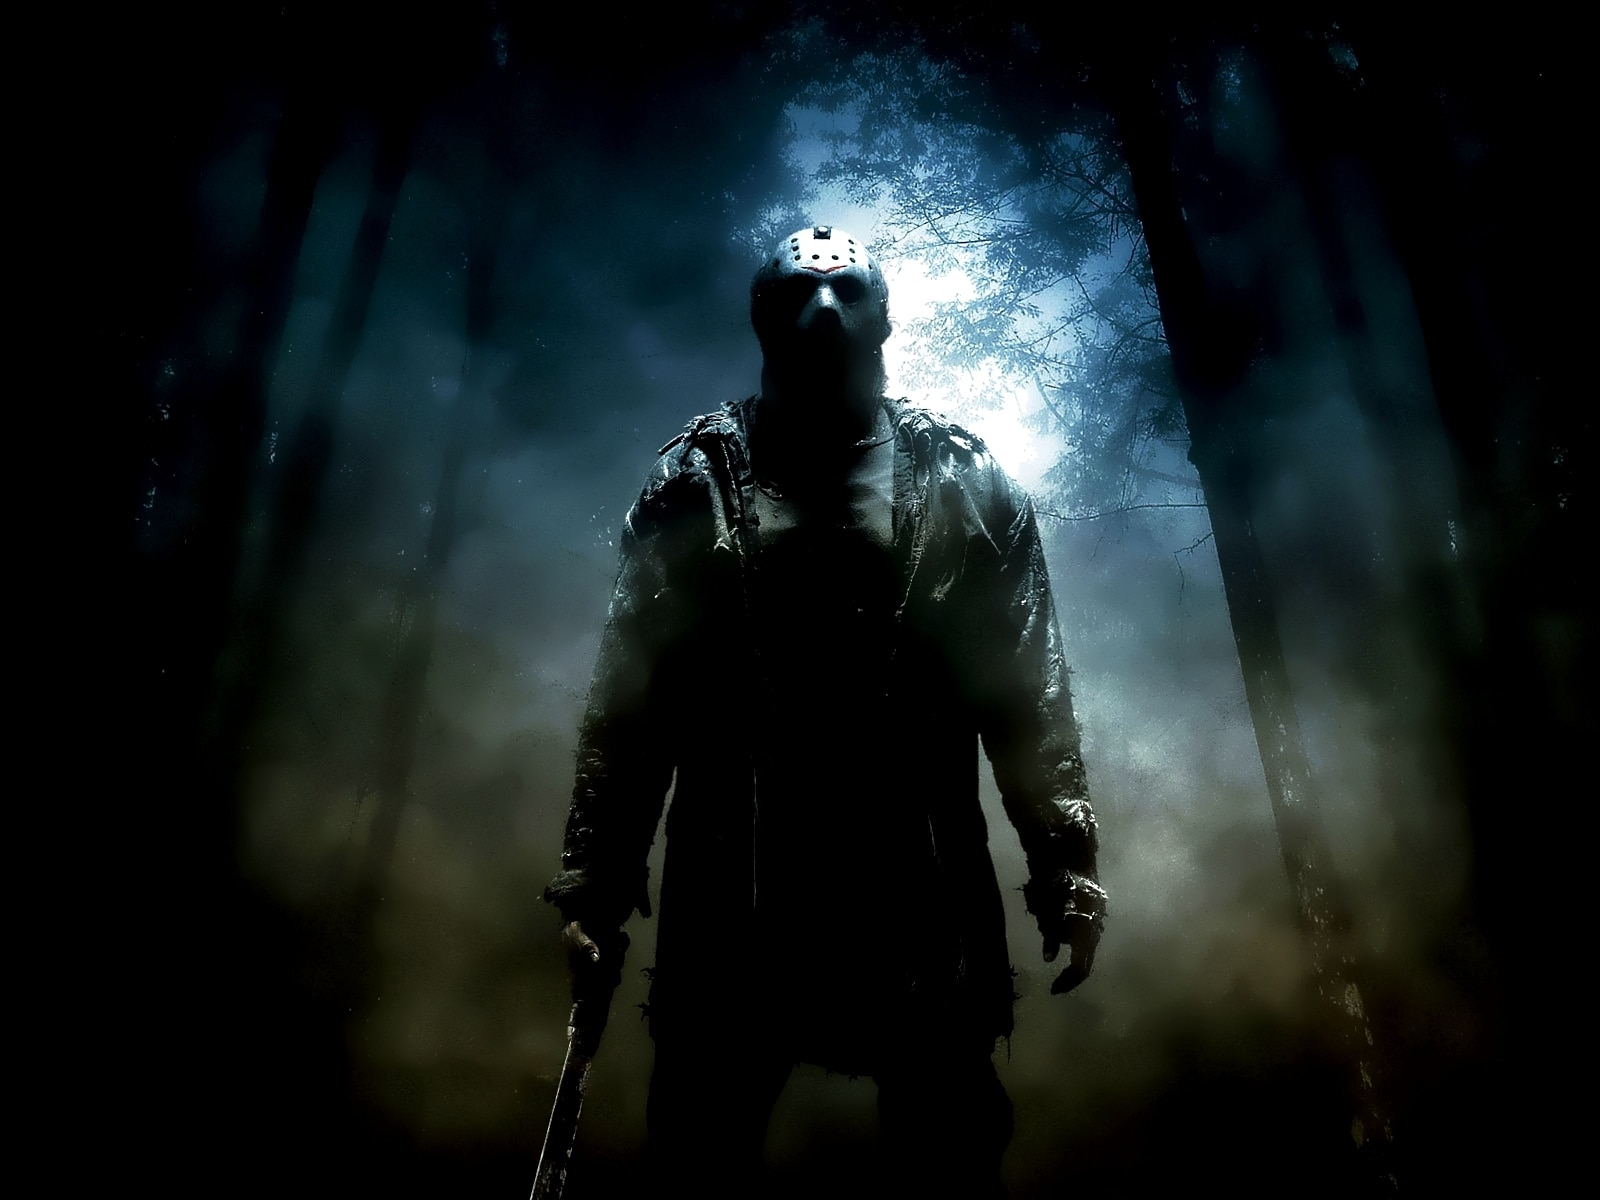 jason voorhees - Friday the 13th Reboot Will Feature New Voorhees Origin Story